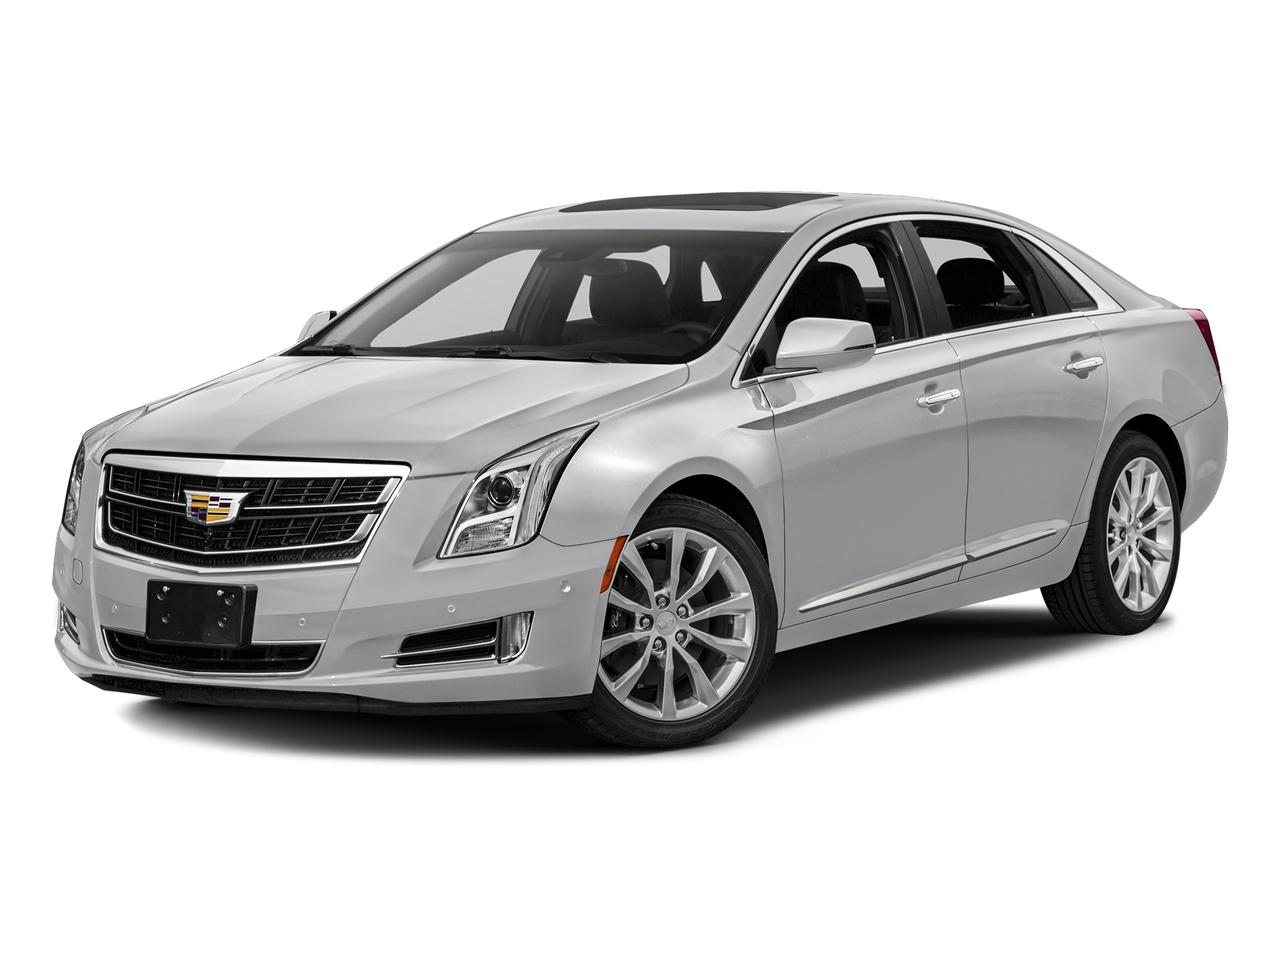 2017 Cadillac XTS Vehicle Photo in Ocala, FL 34474